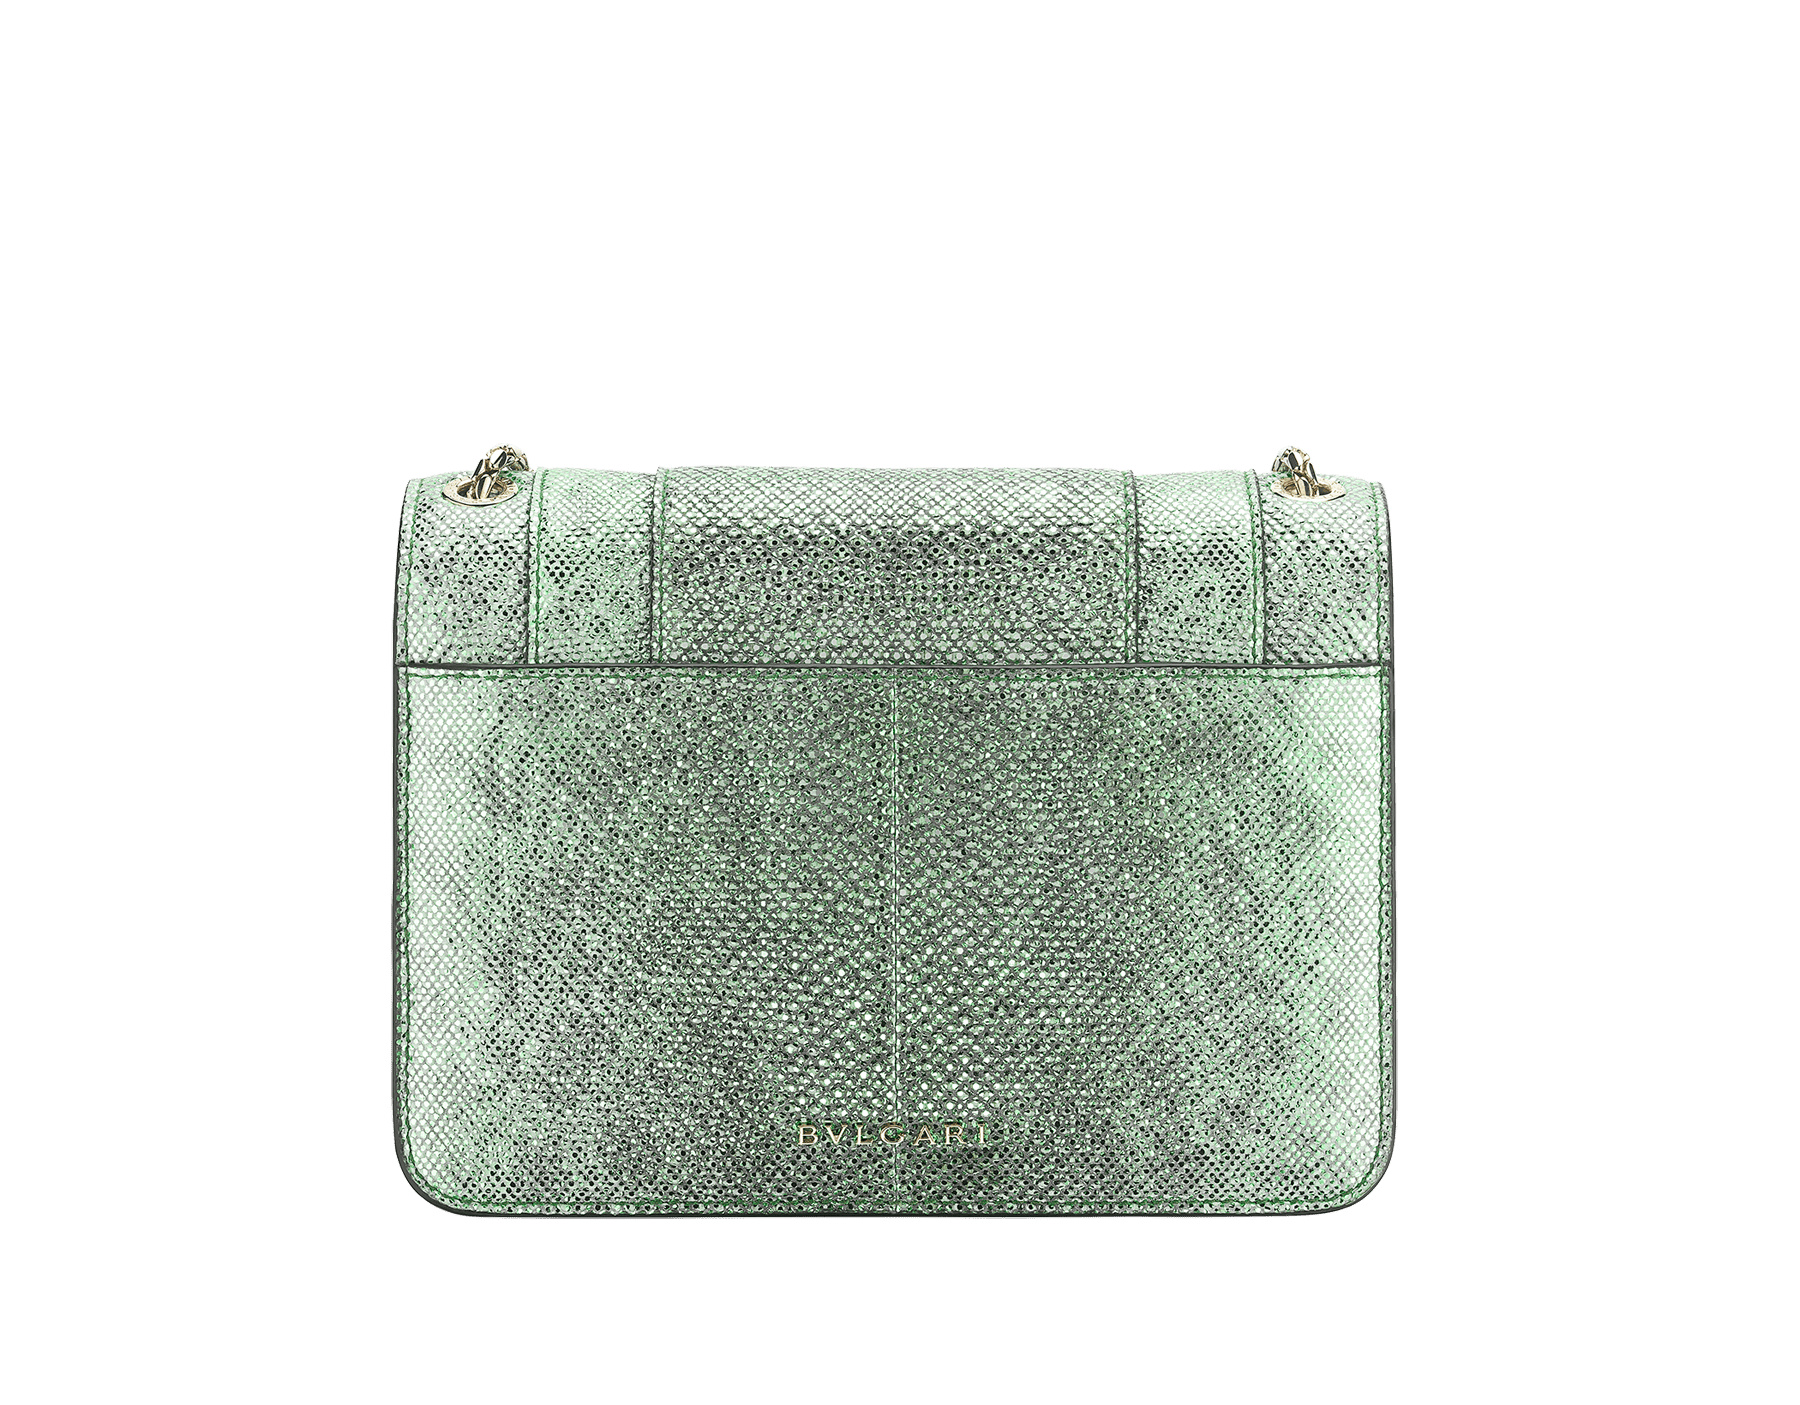 """Serpenti Forever"" crossbody bag in charcoal diamond metallic karung skin. Iconic snakehead closure in light gold plated brass enriched with black and glitter hawk's eye enamel and black onyx eyes. 1082-MK image 3"